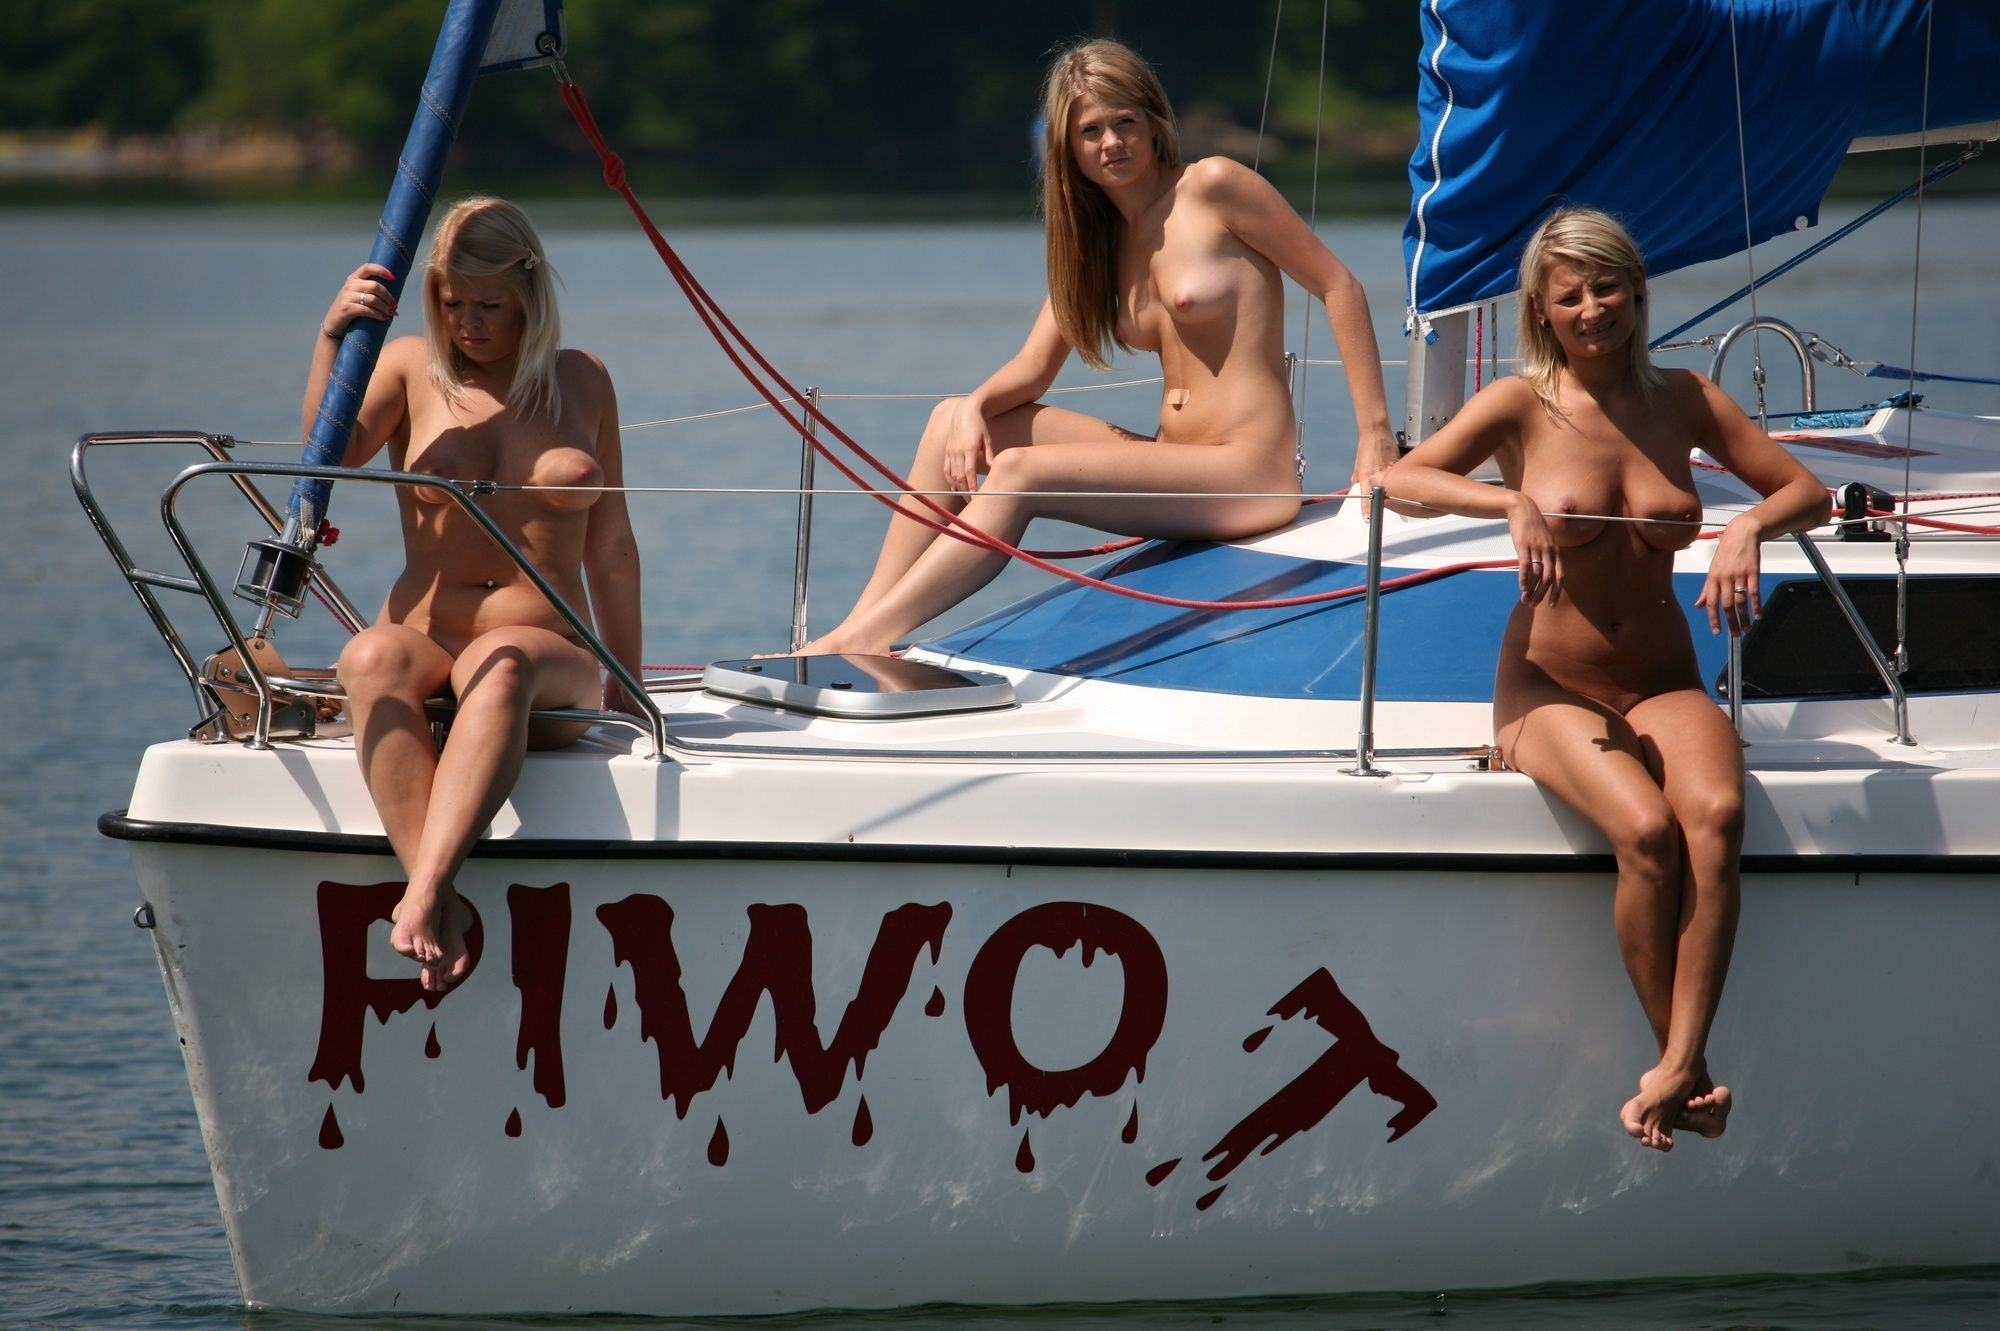 Naked college teen on boat, nice tits hot as hell